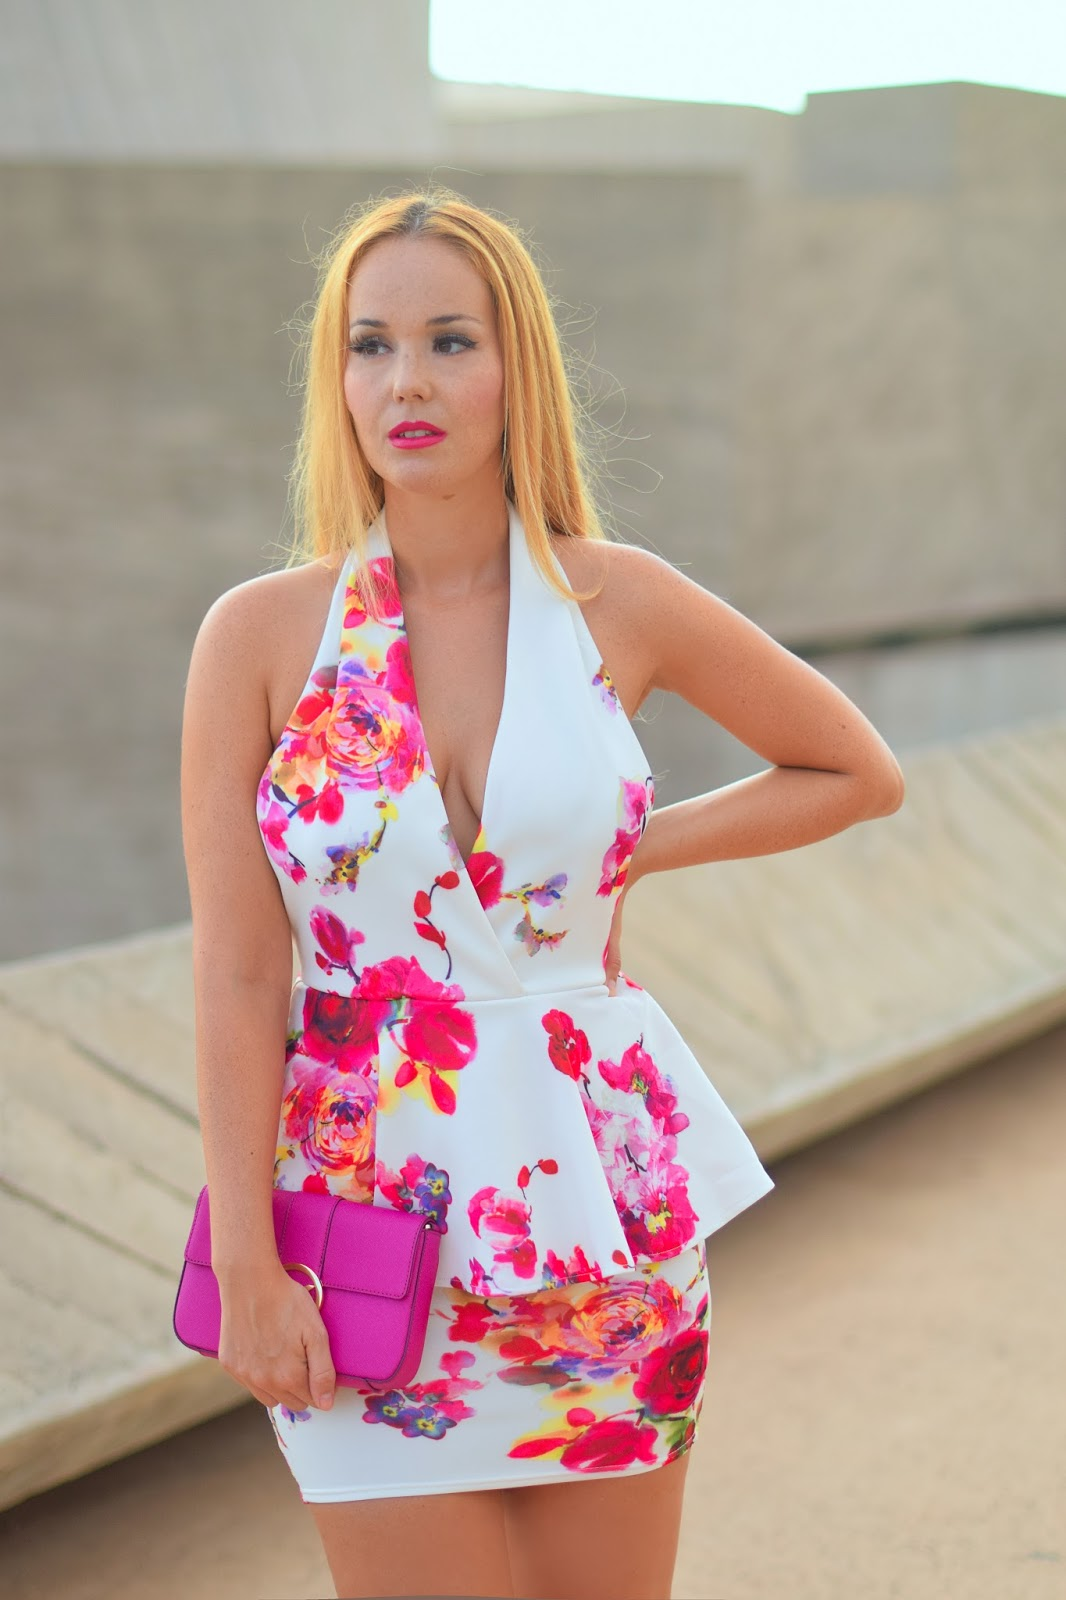 nery hdez, ax paris, floral print,  backless, sexy dress, michael kors